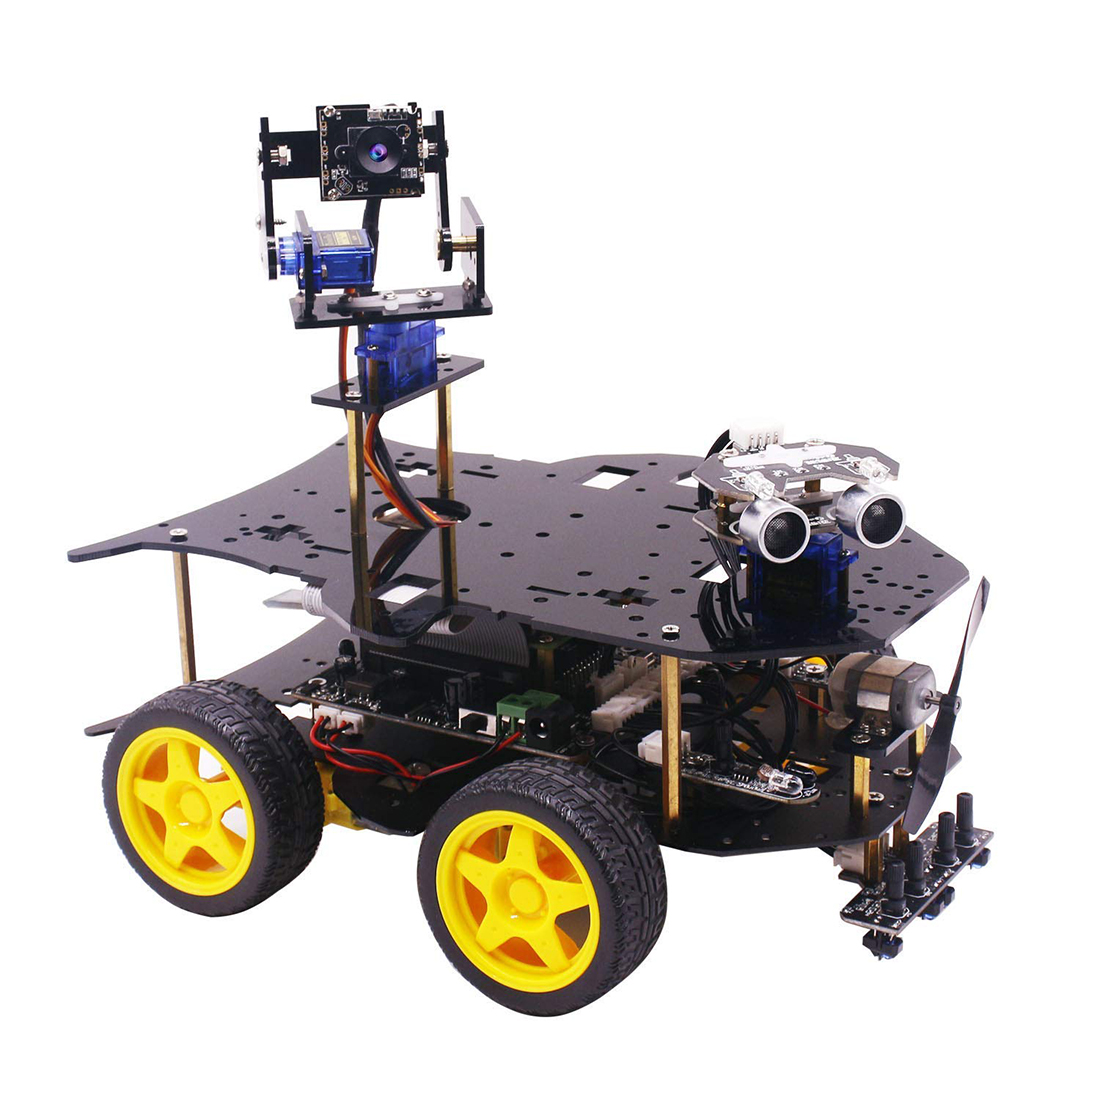 Ultimate Starter Kit For Raspberry Pi 3 B+ HD Camera Programmable Smart Robot Car Kit With 4WD Electronics Education